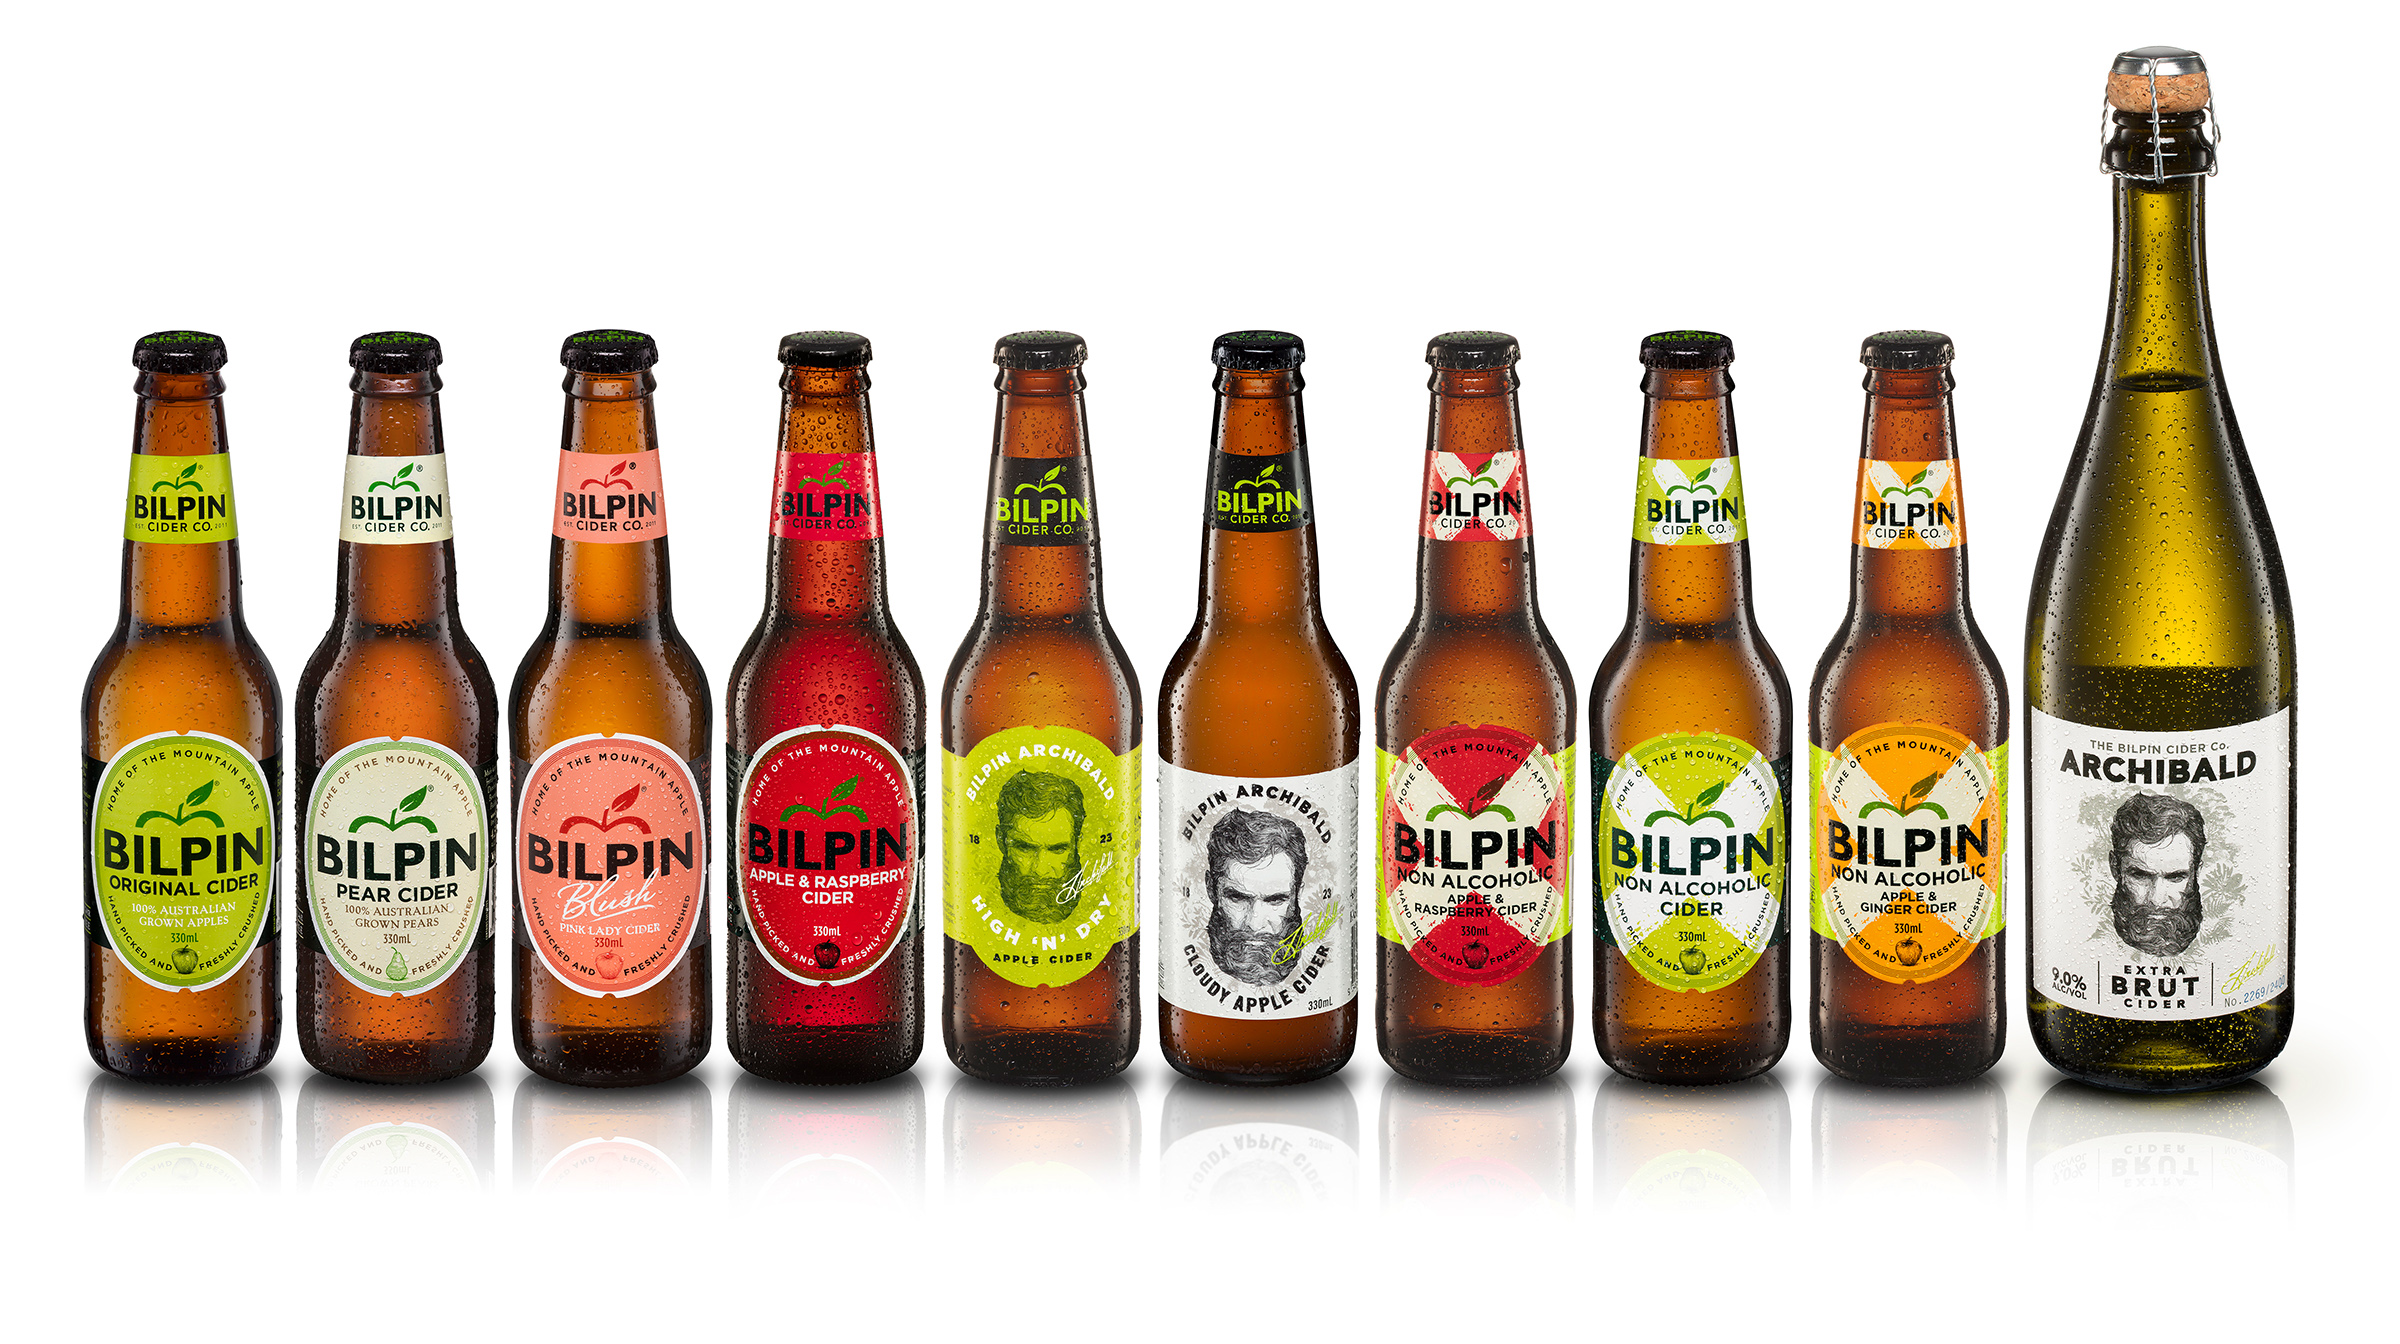 Advertising product alcohol studio photography Bilpin Product Group cider